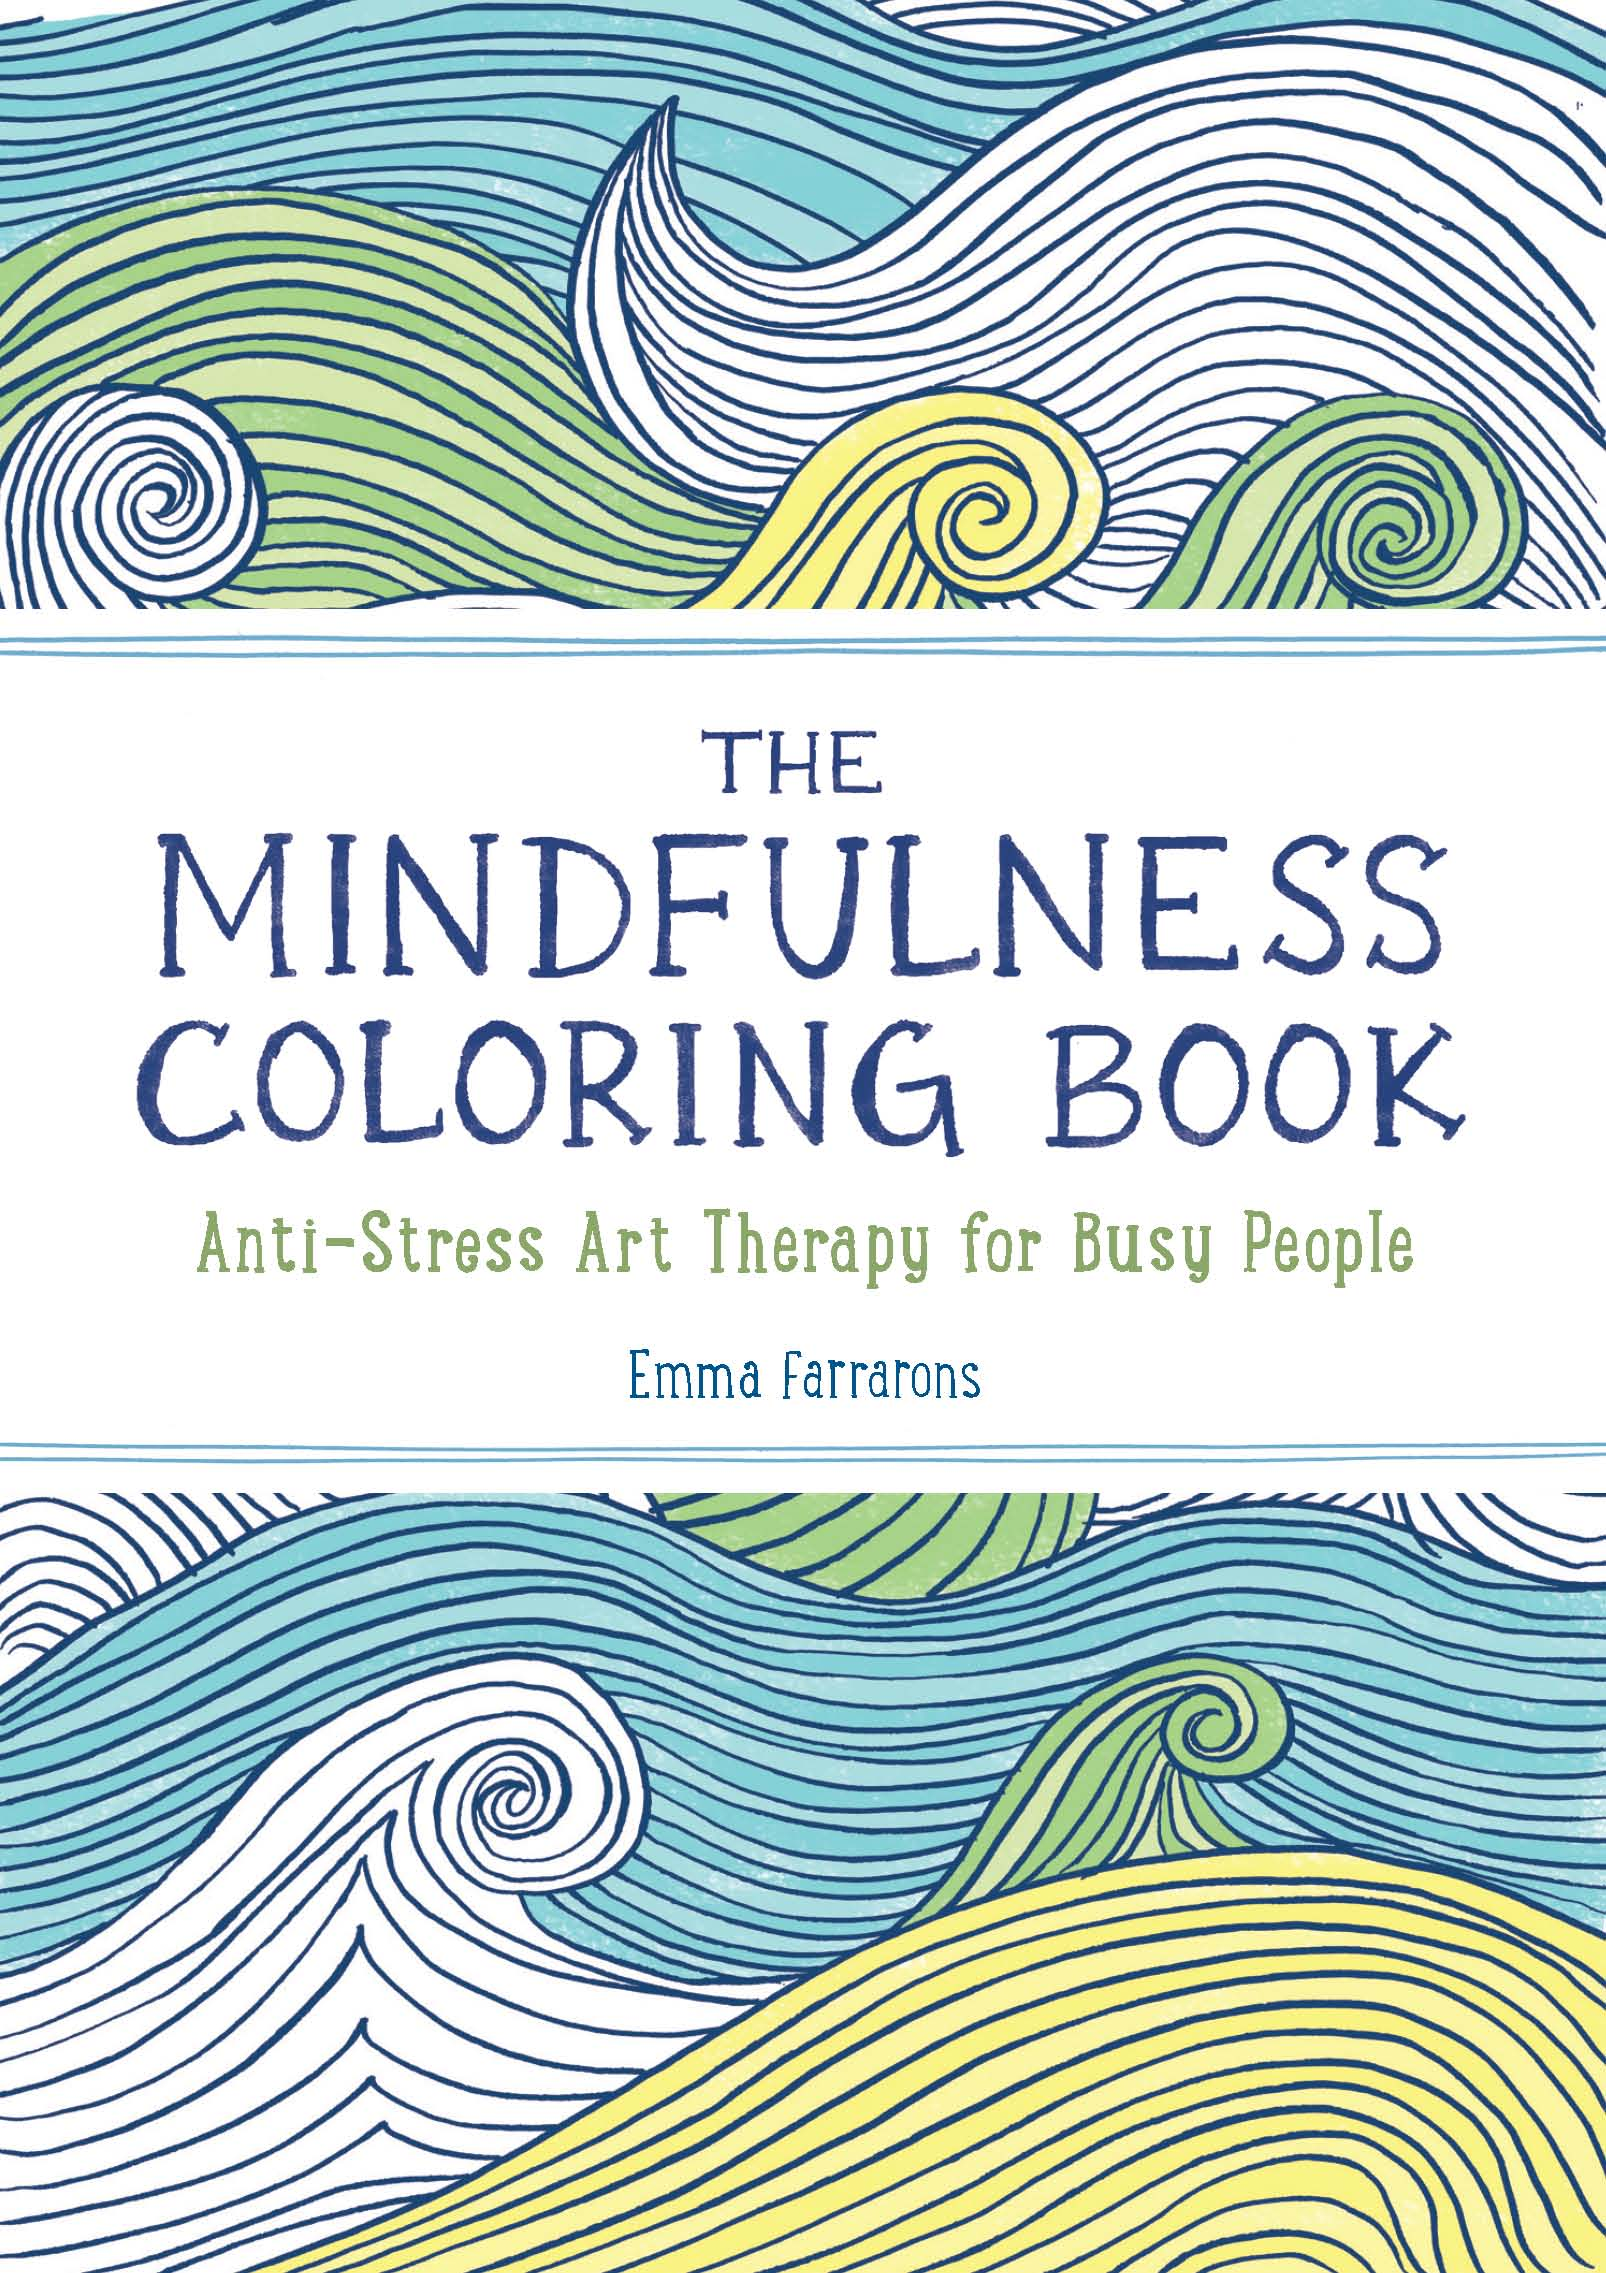 I Have Always Loved To Color And Yes Agree It Helps Relieve Stress Was Excited Receive The Mindfulness Coloring Book By Emma Farrarons